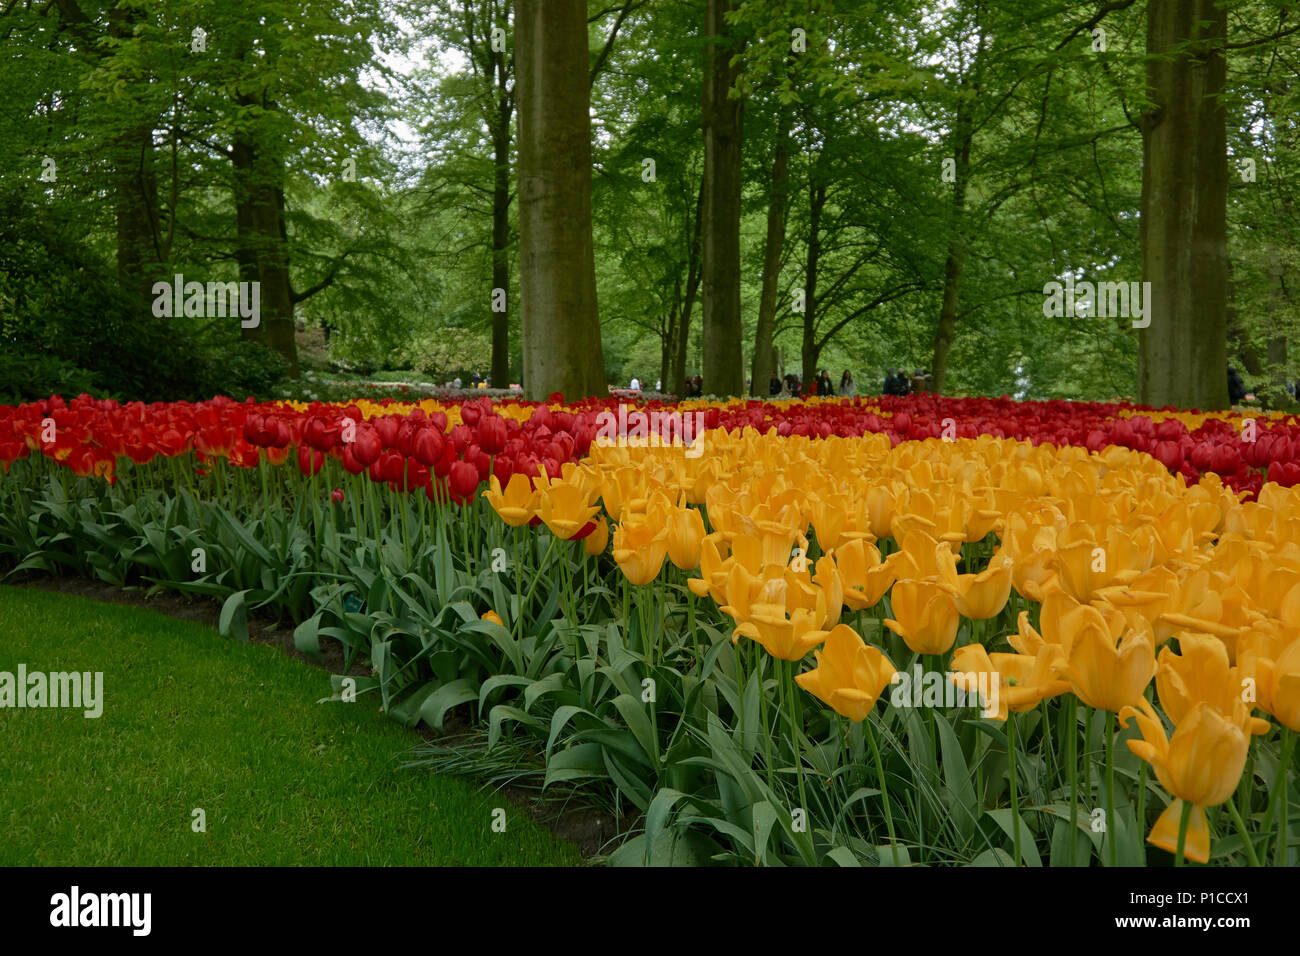 Camp Of Tulips In The Gardens Of Keukenhoff, Netherlands   Stock Image